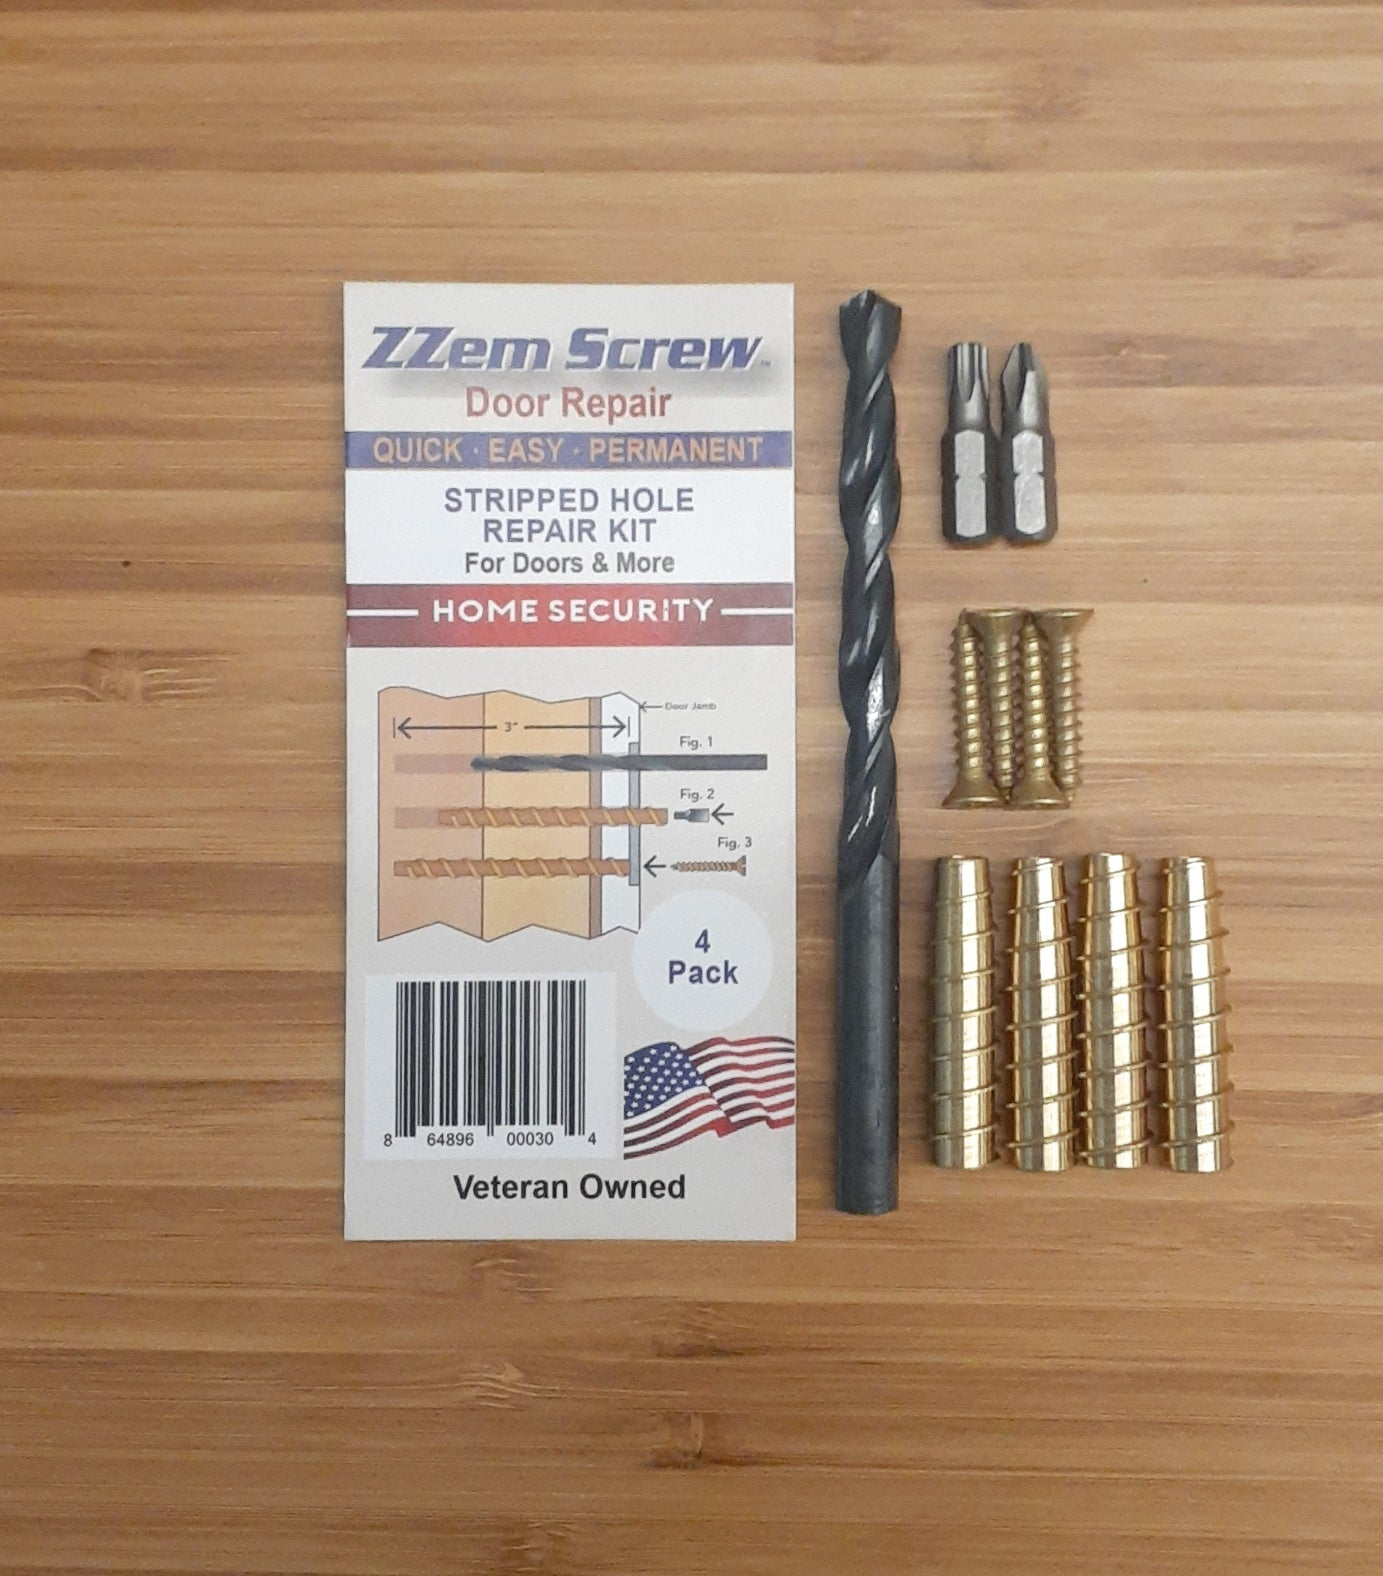 4 Pack #9 | 1 1/2"